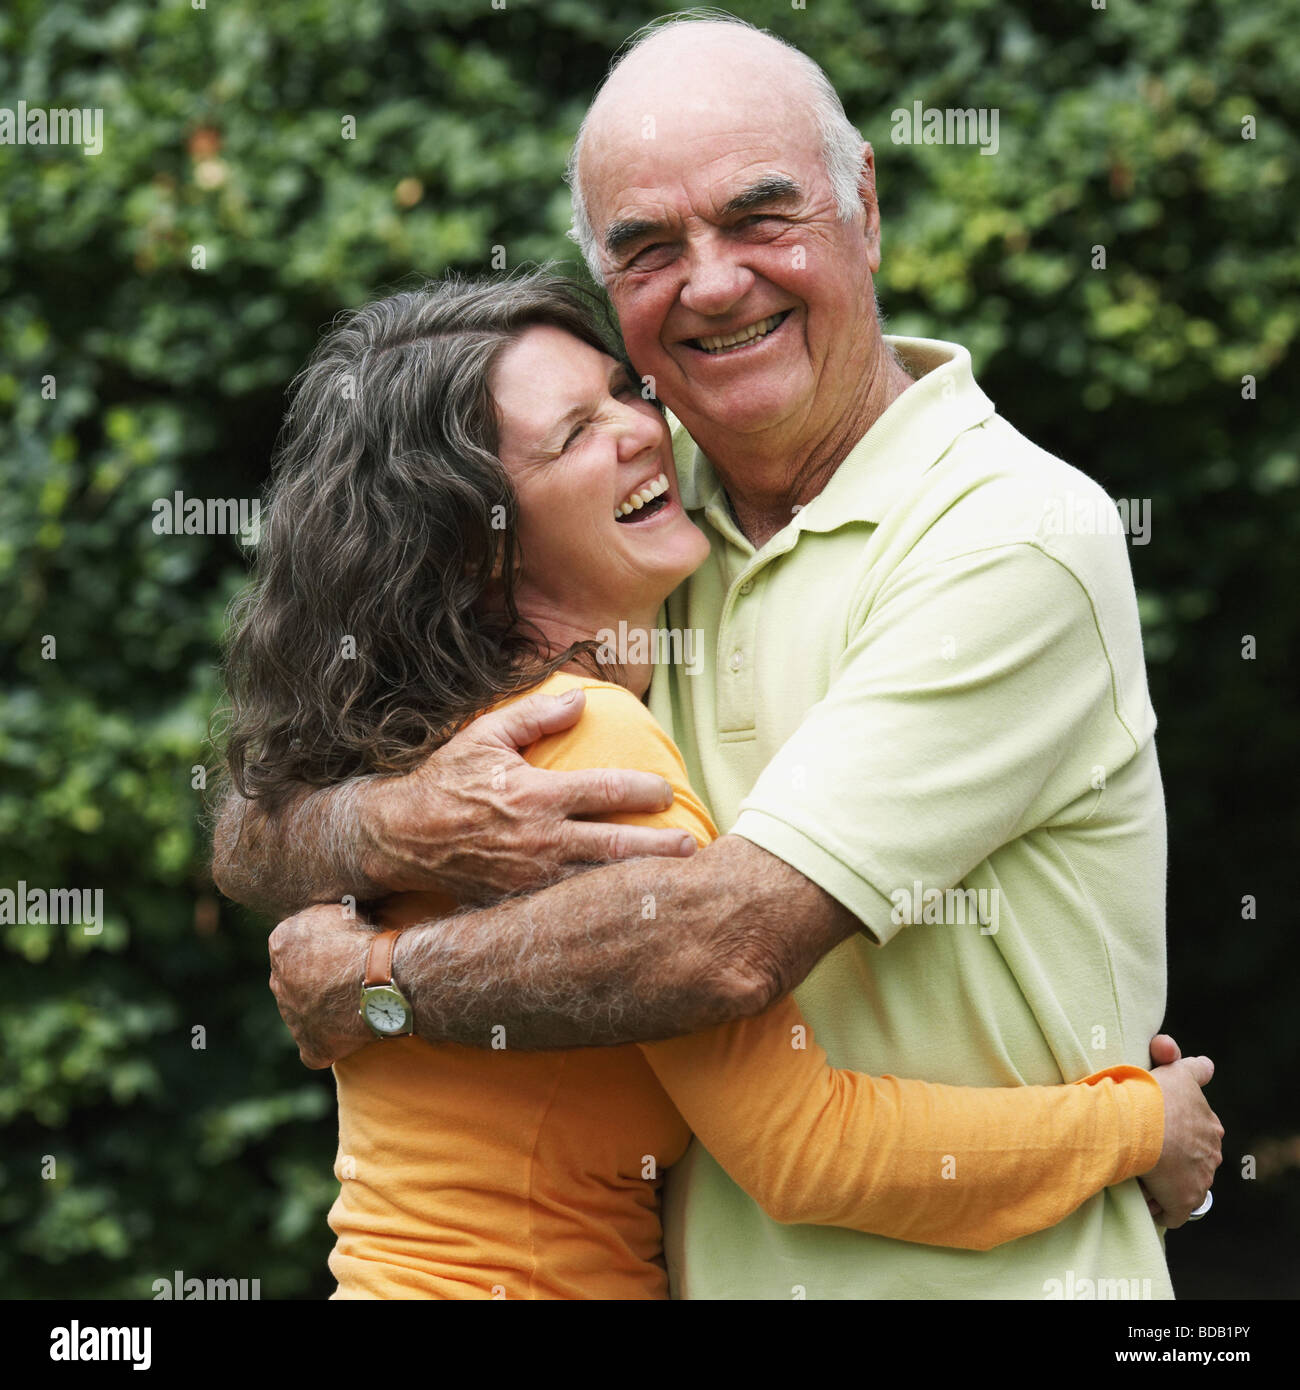 Senior man smiling with her daughter in a park - Stock Image